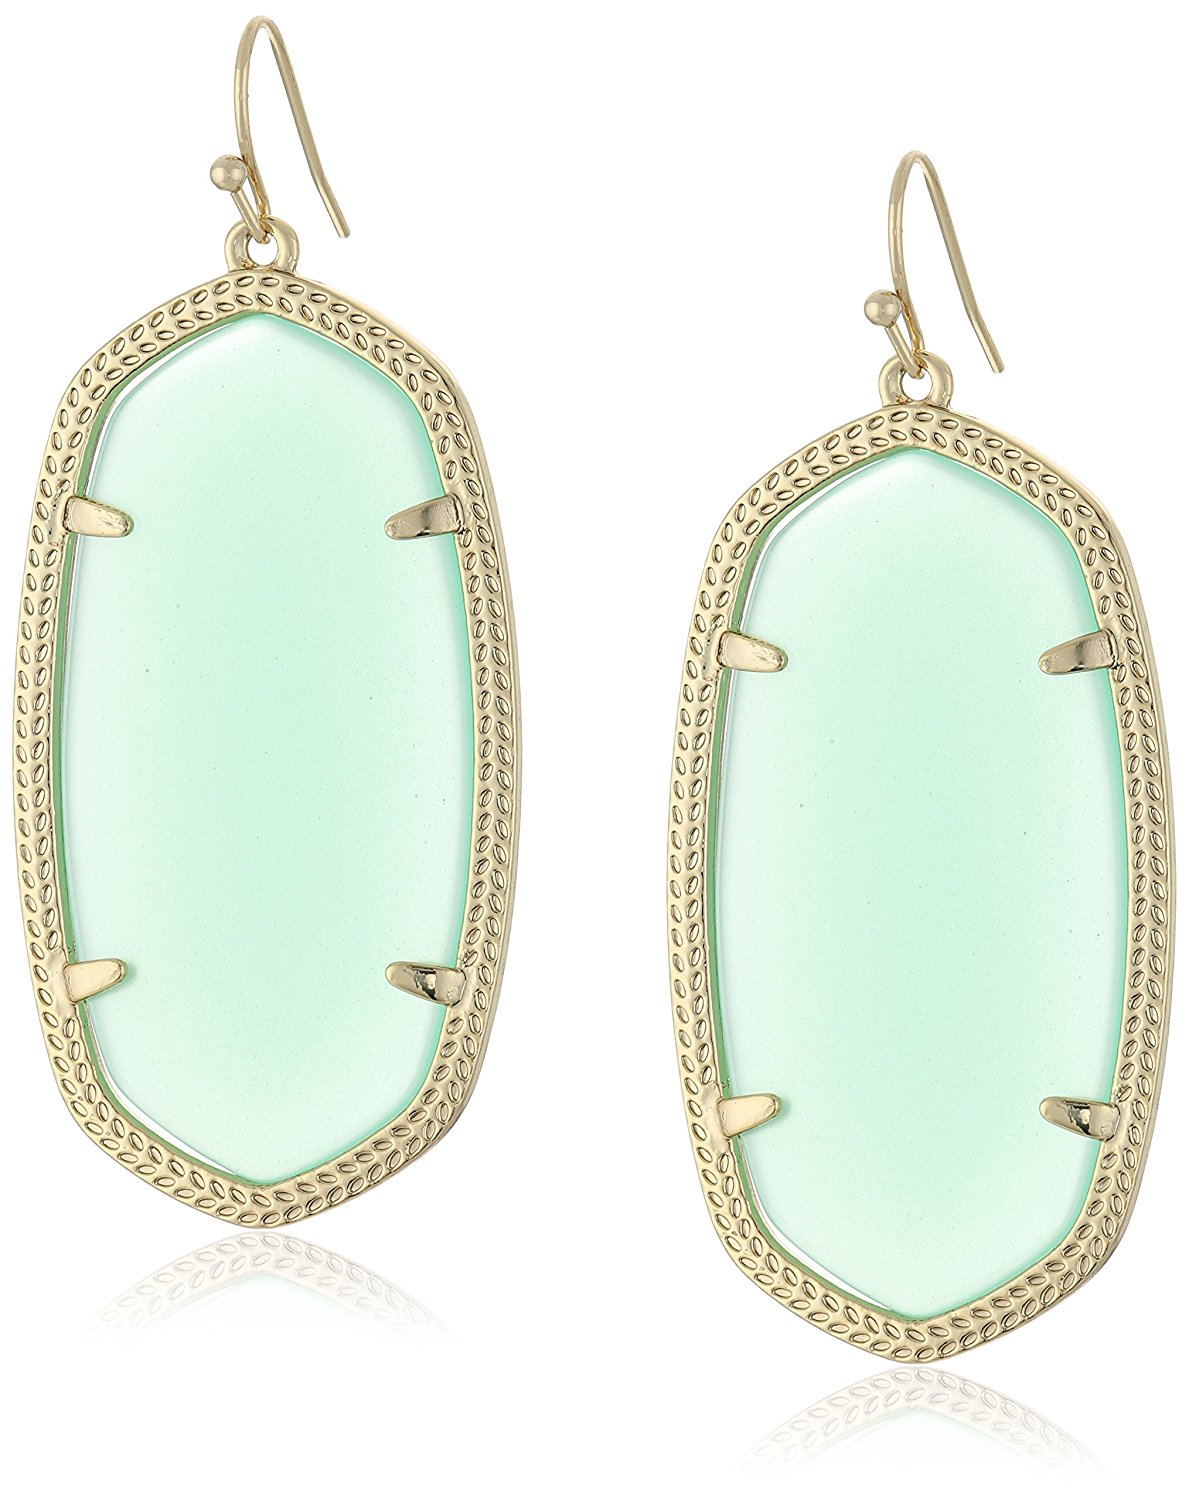 Kendra Scott Danielle Drop Earrings - 4217700357